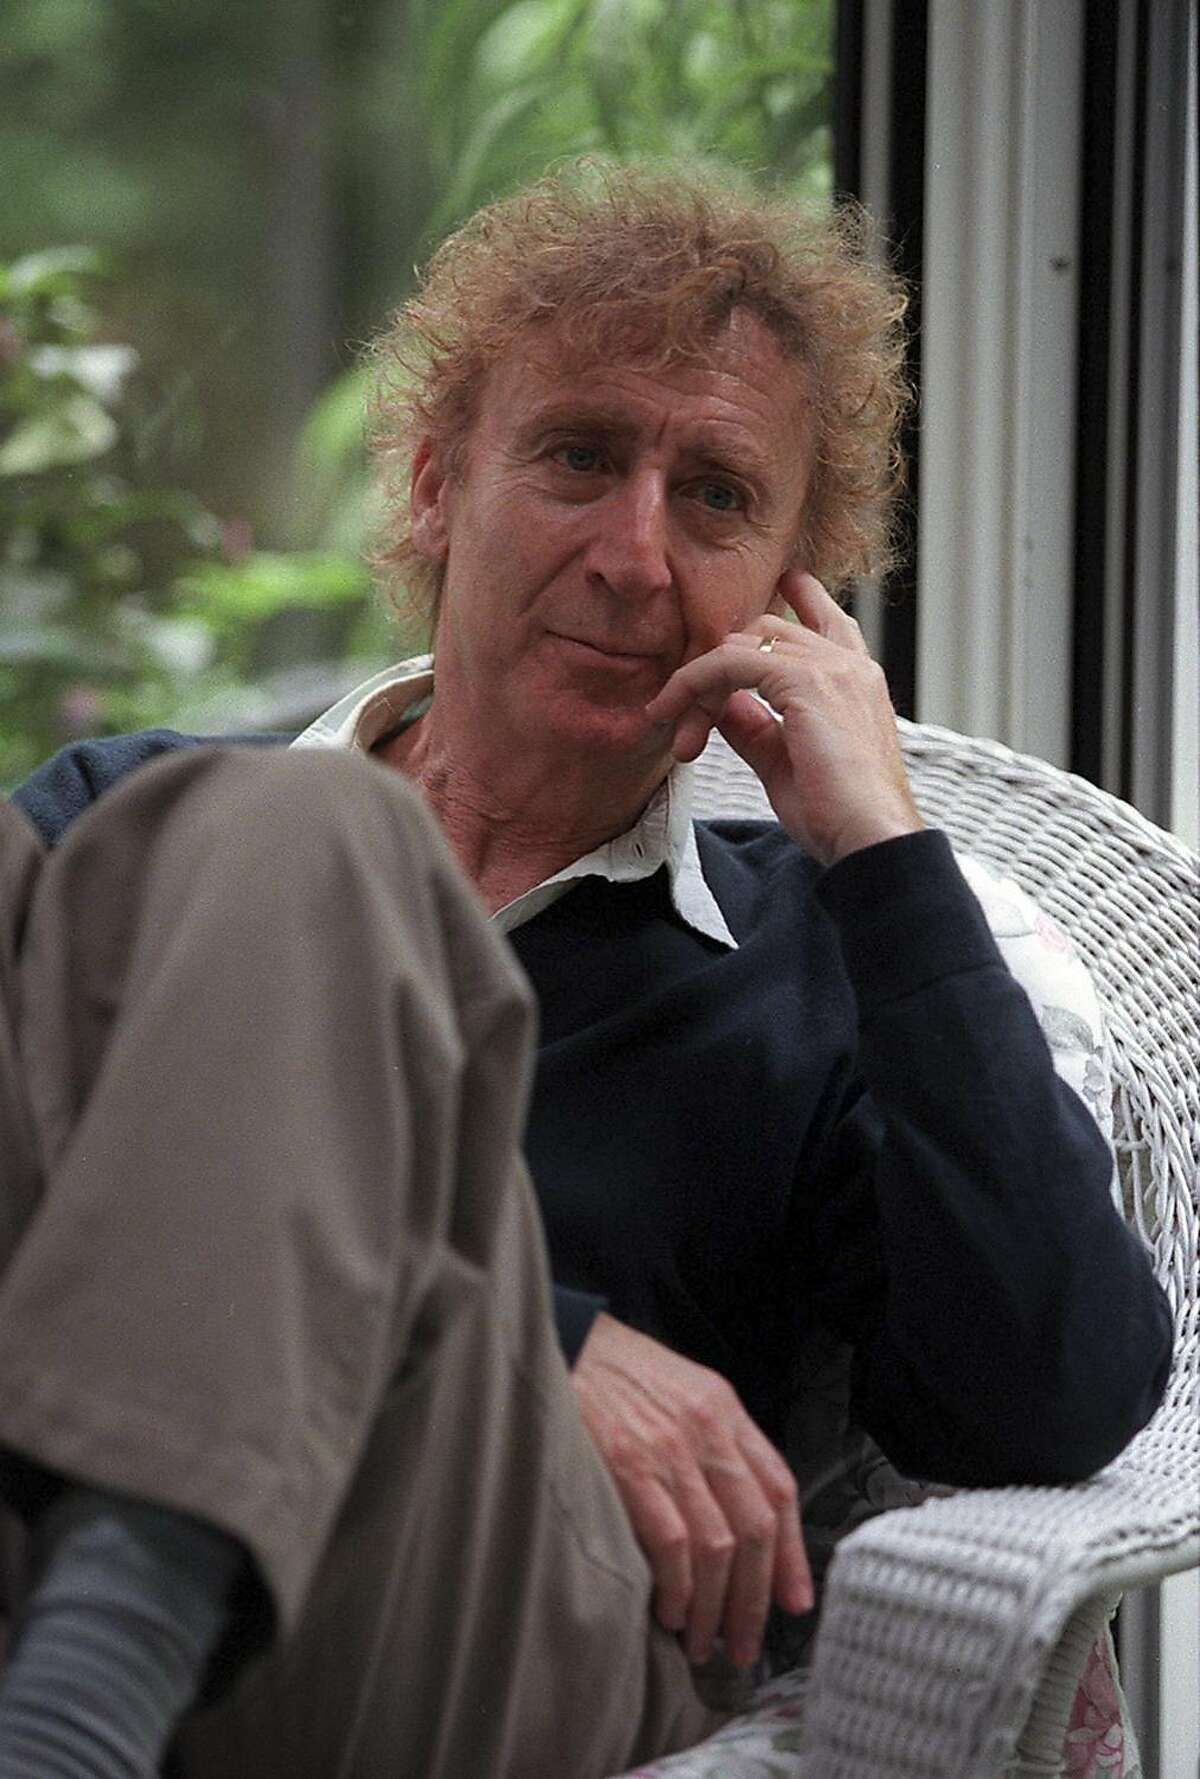 FILE -- Gene Wilder sits in the sun porch of his home in Stamford, Conn., Sept. 7, 1999. Wilder, who established himself as one of America's foremost comic actors with his delightfully neurotic performances in three films directed by Mel Brooks, his eccentric star turn in the family classic